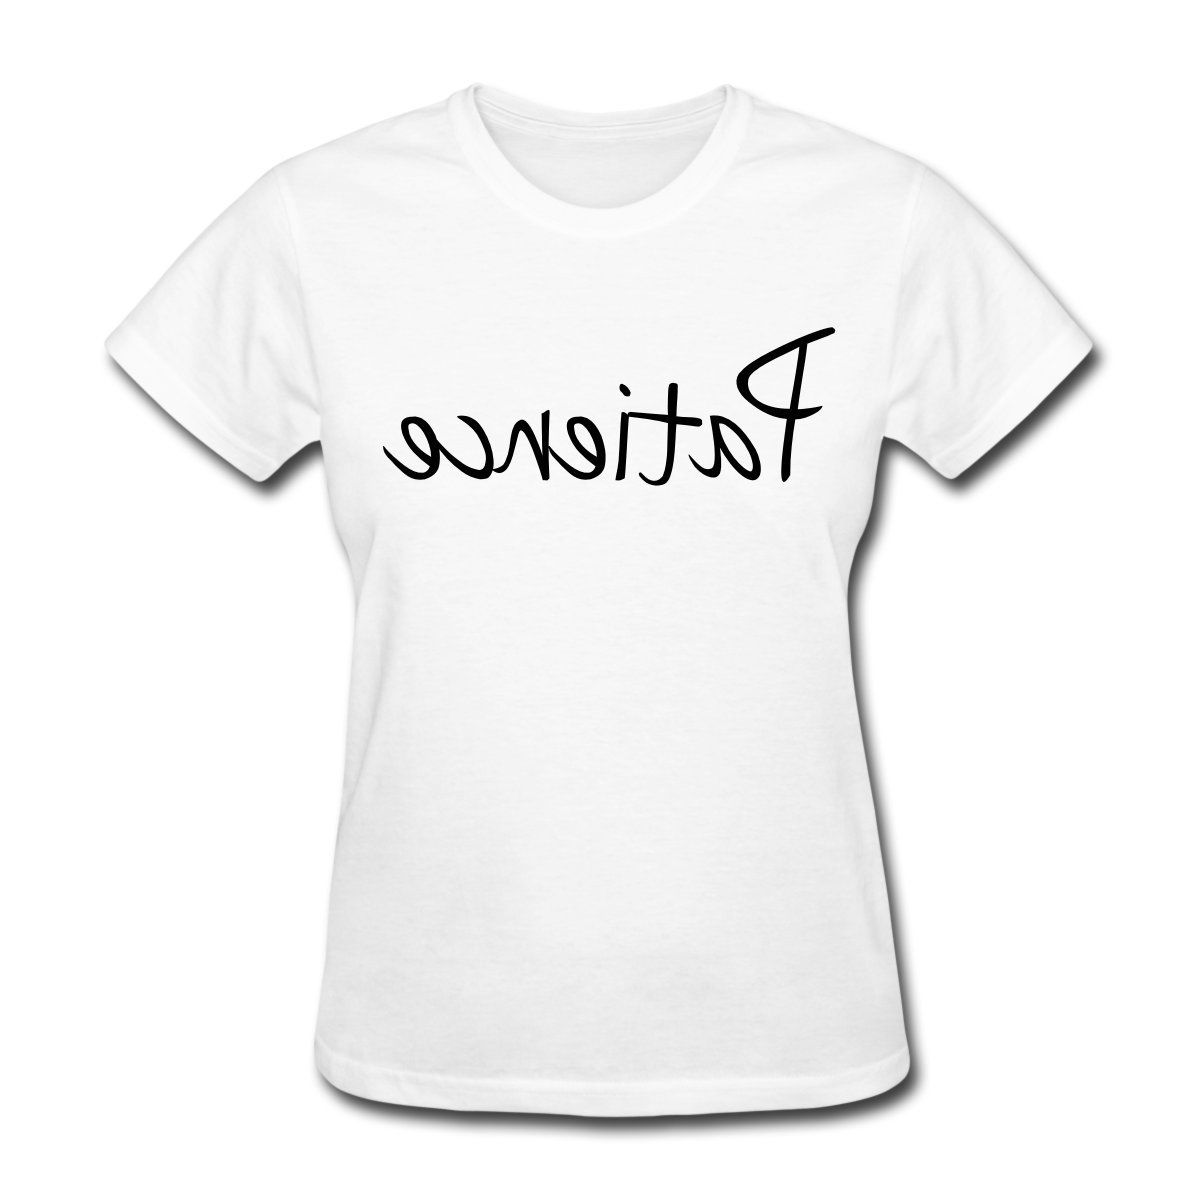 Patience Hair Length Check Womens T-Shirt Hot Sale Fashion Women Fitness T Shirt Letter Femme Fashion Brand Loose